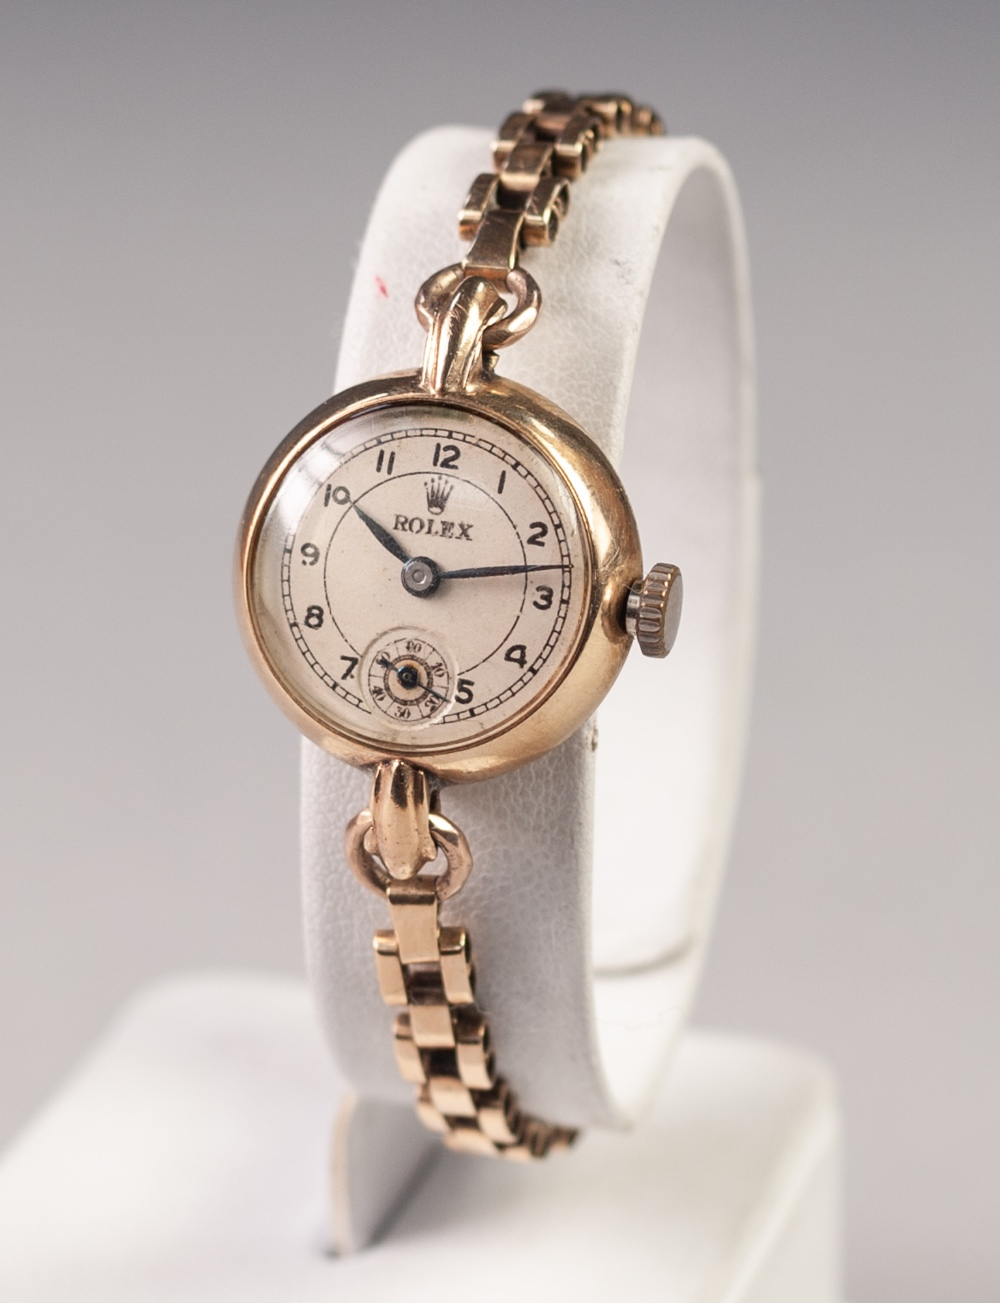 Lot 22 - LADY'S ROLEX SWISS GOLD WRIST WATCH, with mechanical movement, small circular Arabic dial with